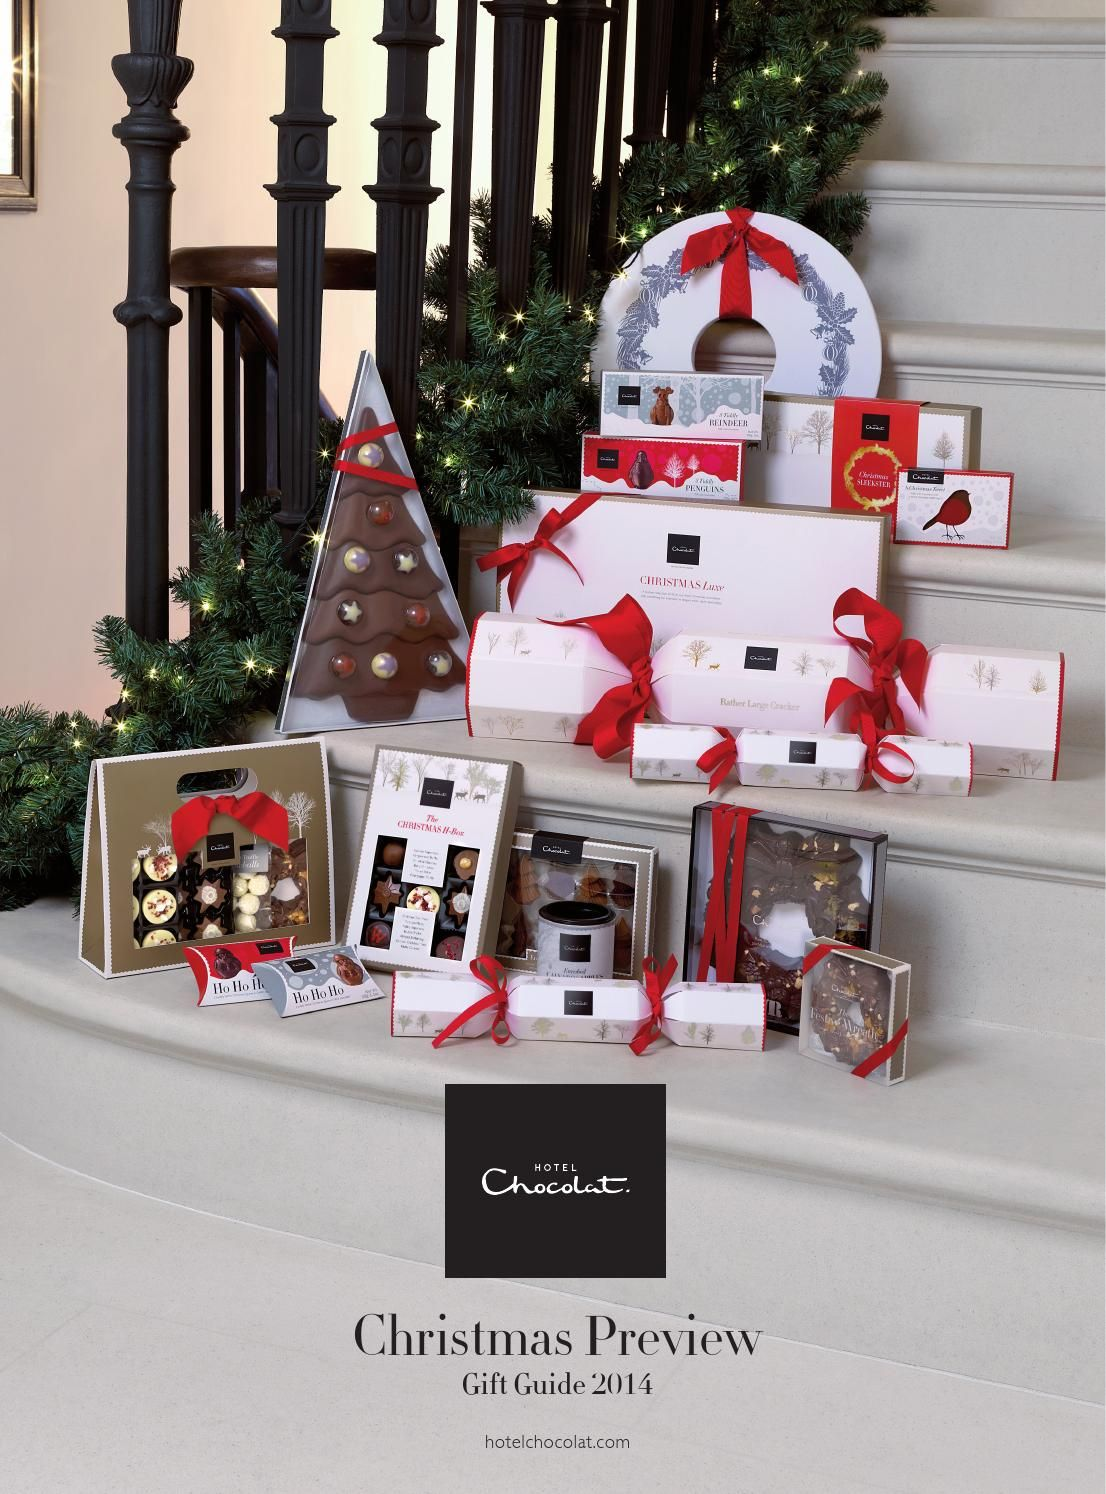 Hotel Chocolat Christmas Gift Guide 2014 1 | Food | Pinterest ...